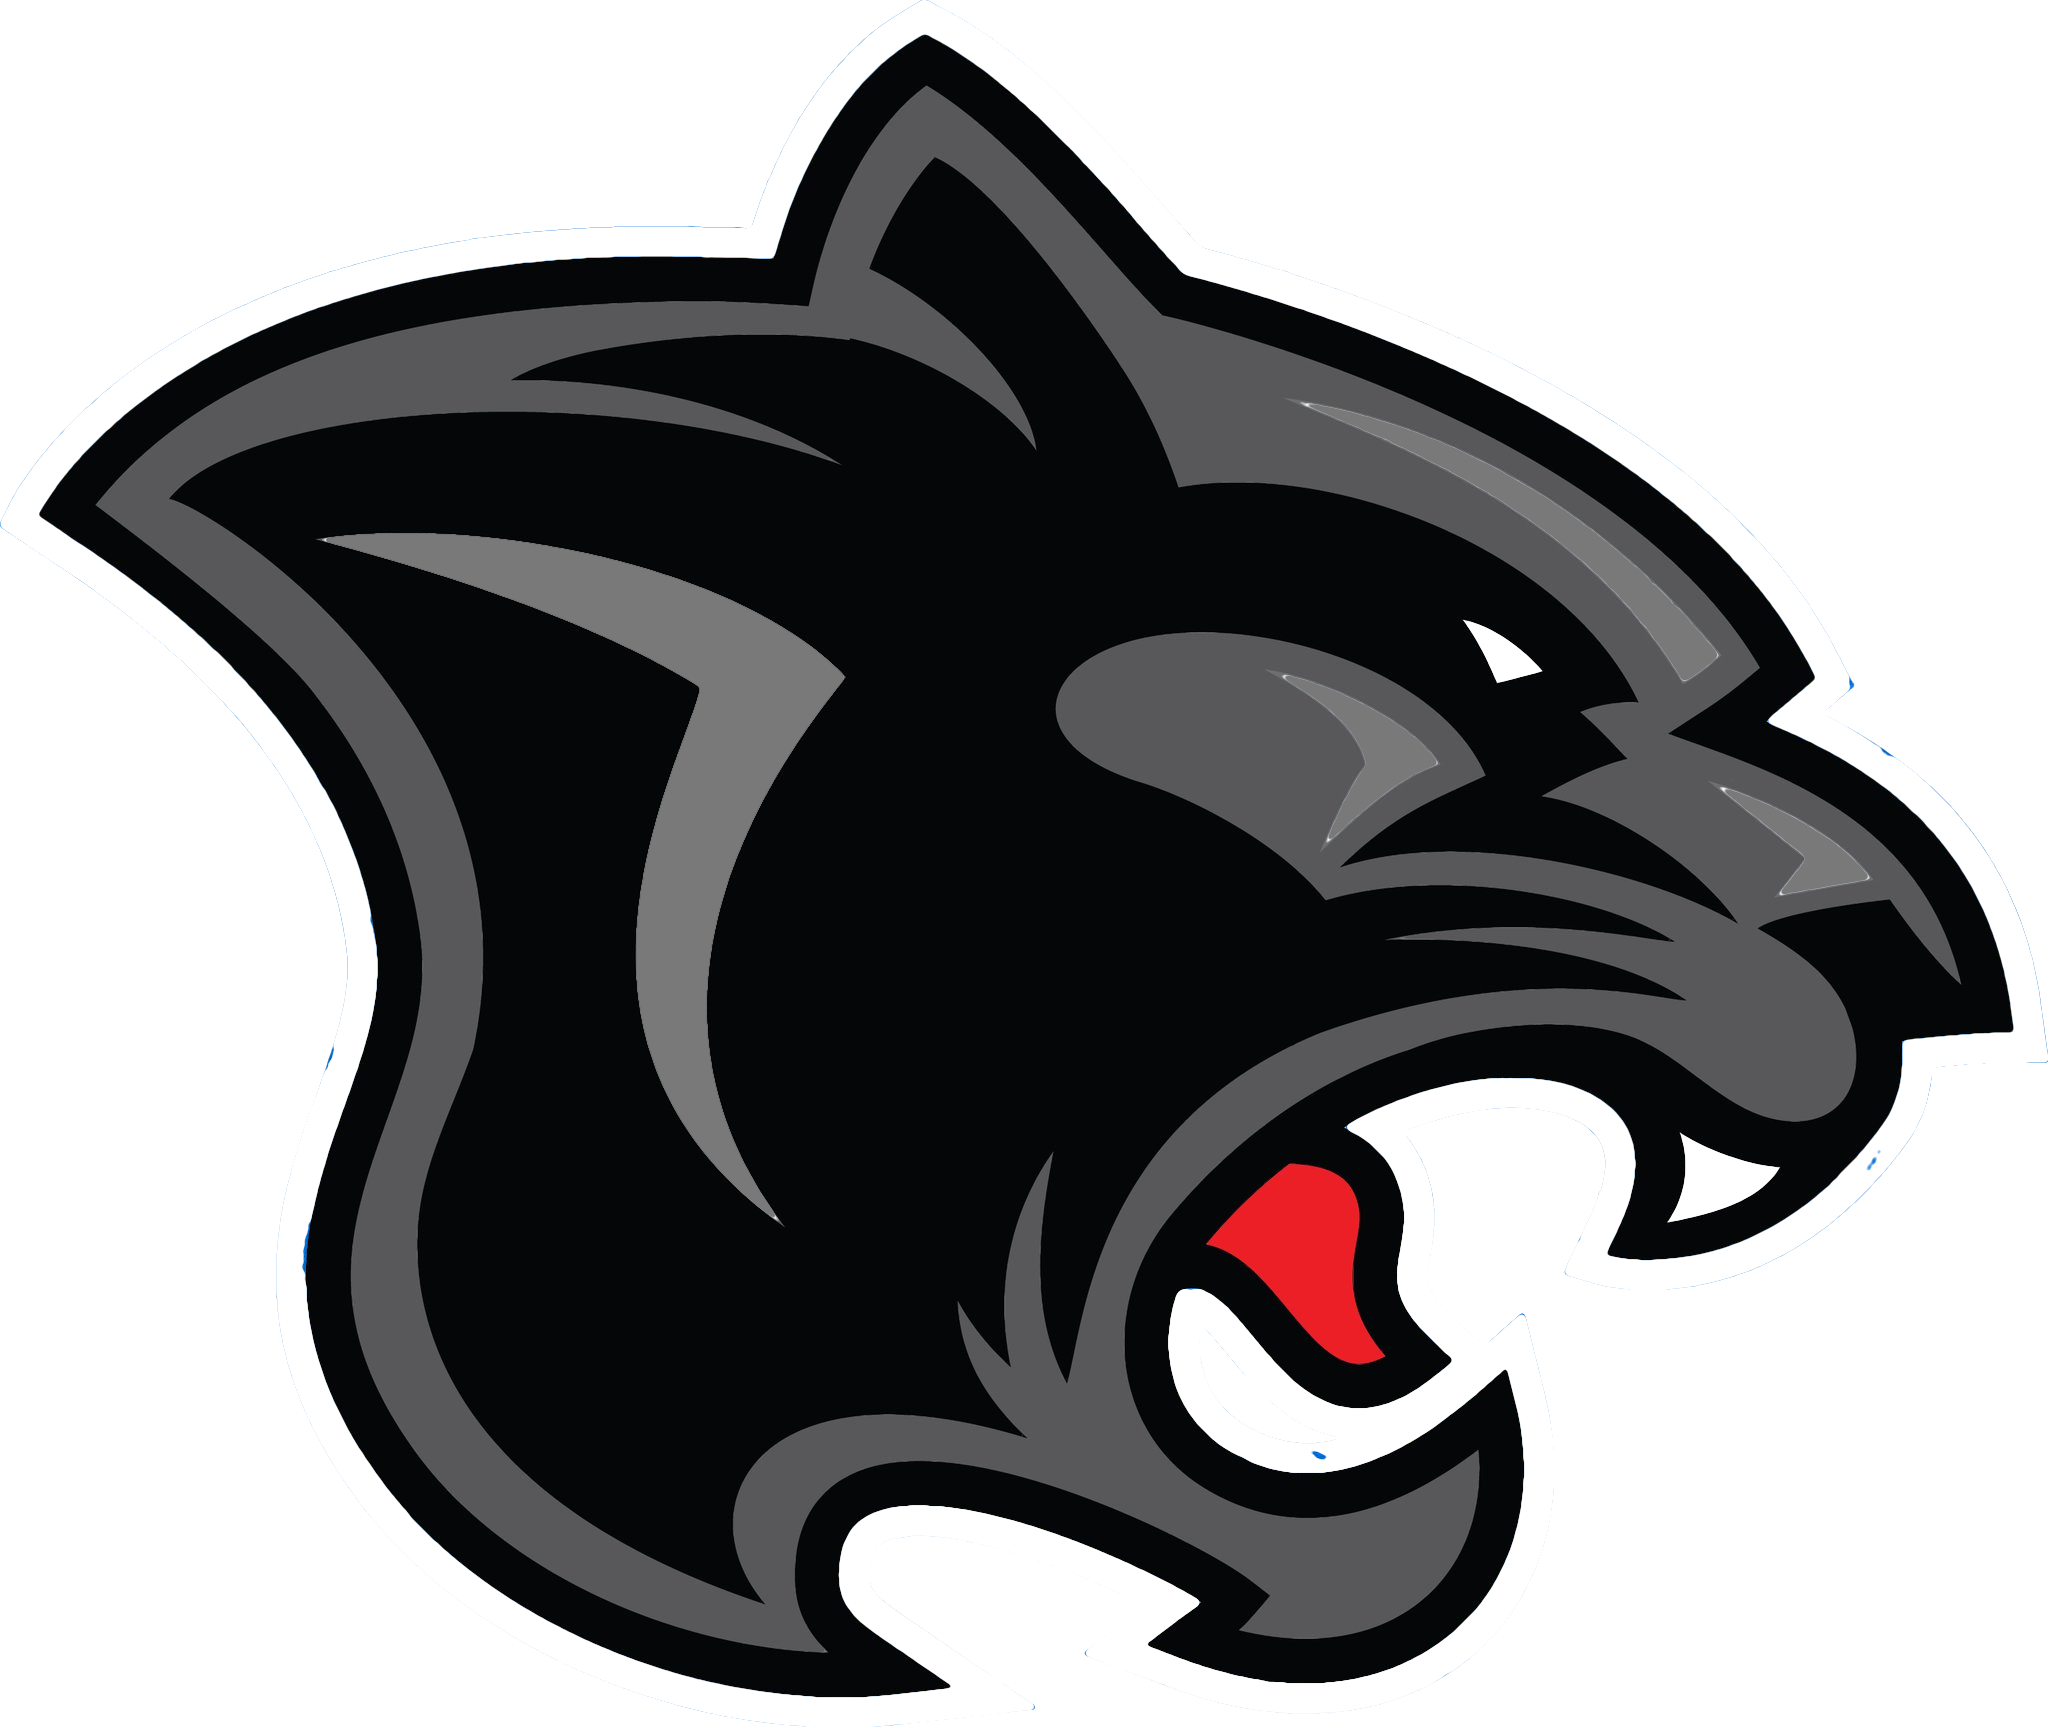 Panther Clipart   Free download best Panther Clipart on ...